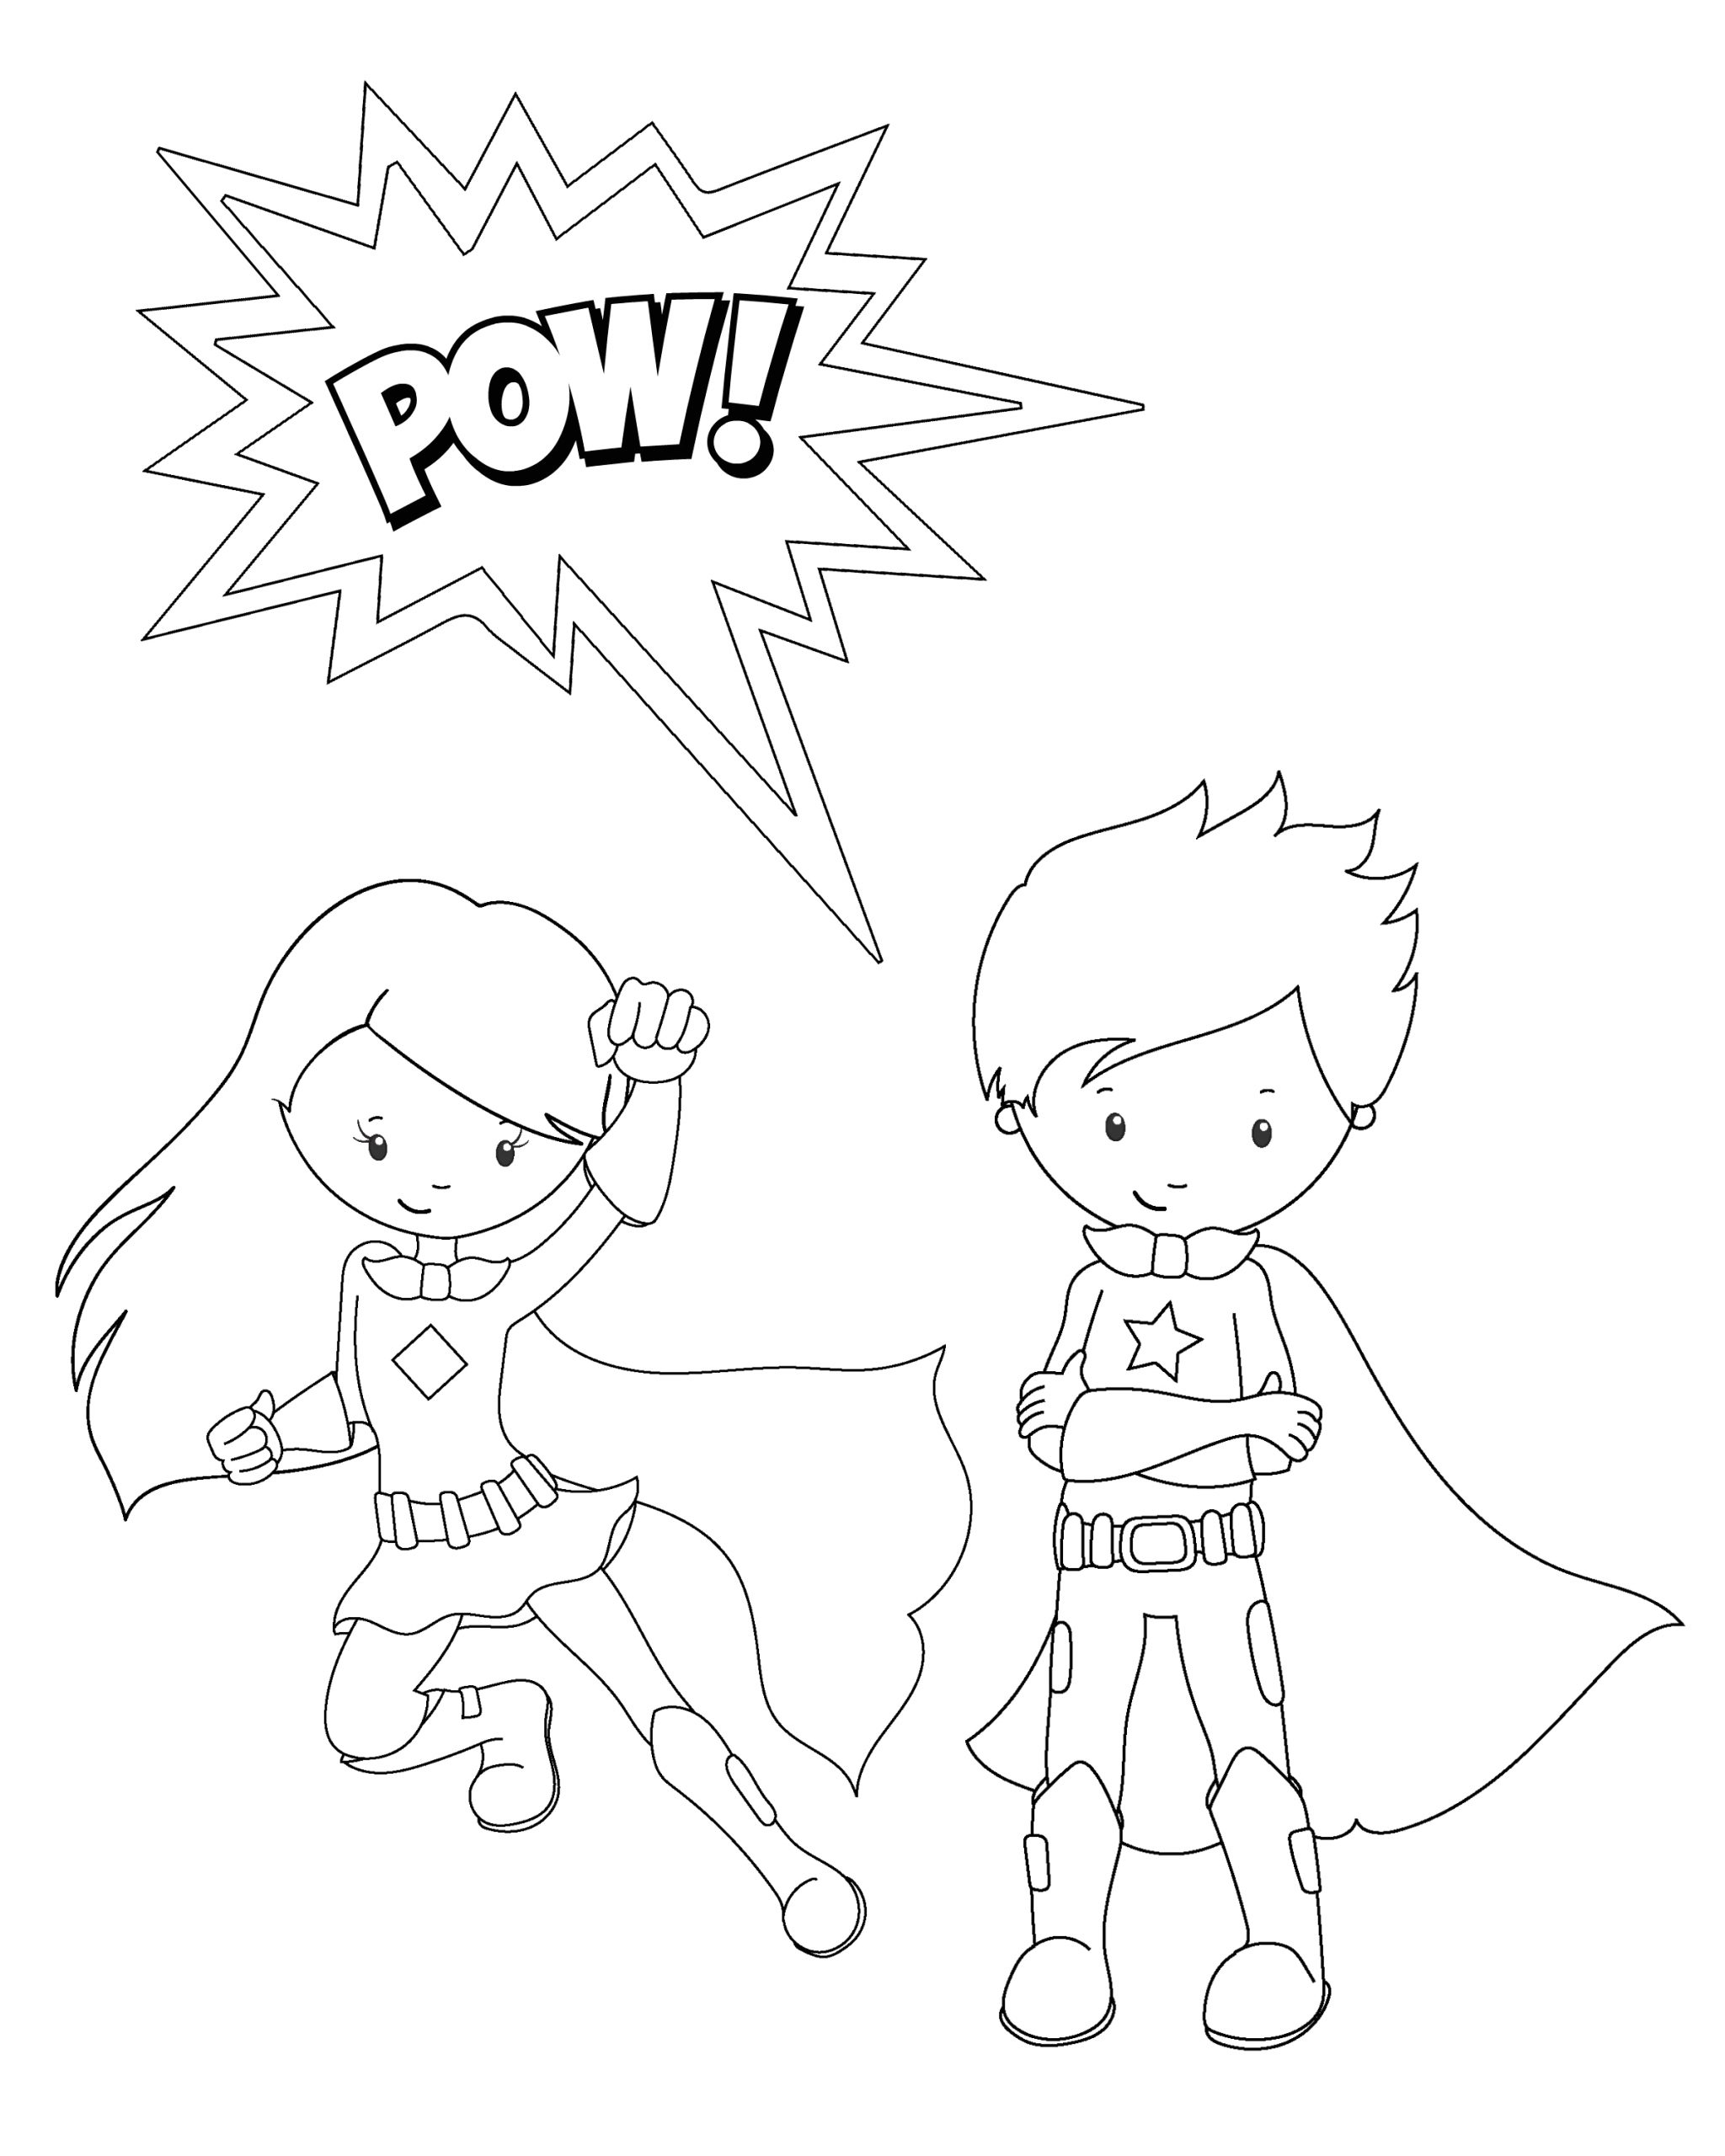 Free Printable Superhero Coloring Pages for Kids Free Printable Superhero Coloring Sheets for Kids Crazy